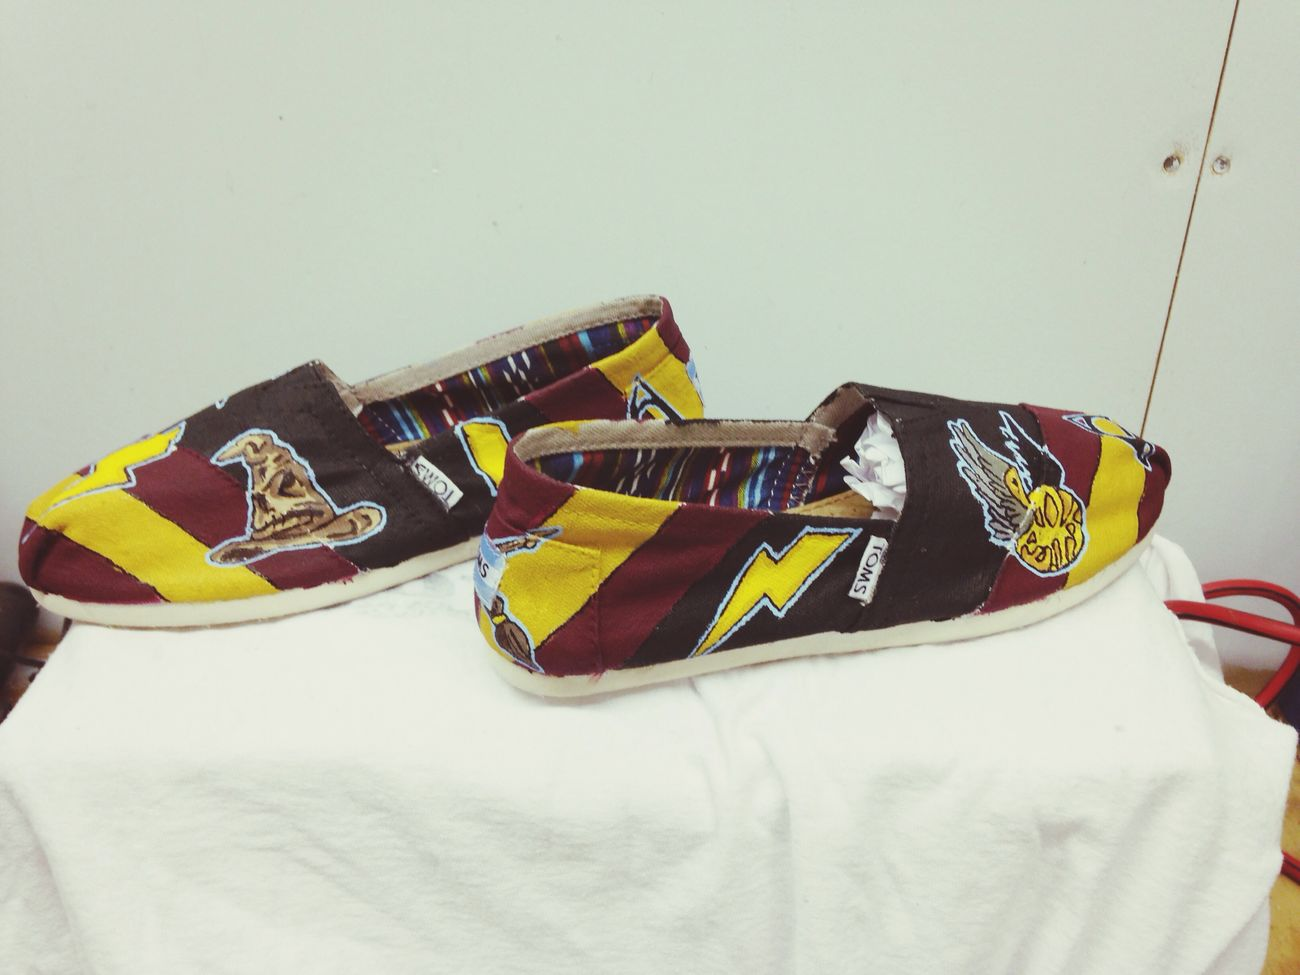 Custom designed TOMS by March ninth. Mninth.wix.com/marchninth Facebook.com/marchninth2014 Custom Shoes Toms Customs Art Fashion Shoes Marchninth Harry Potter Harry Potter ❤ gryffindor